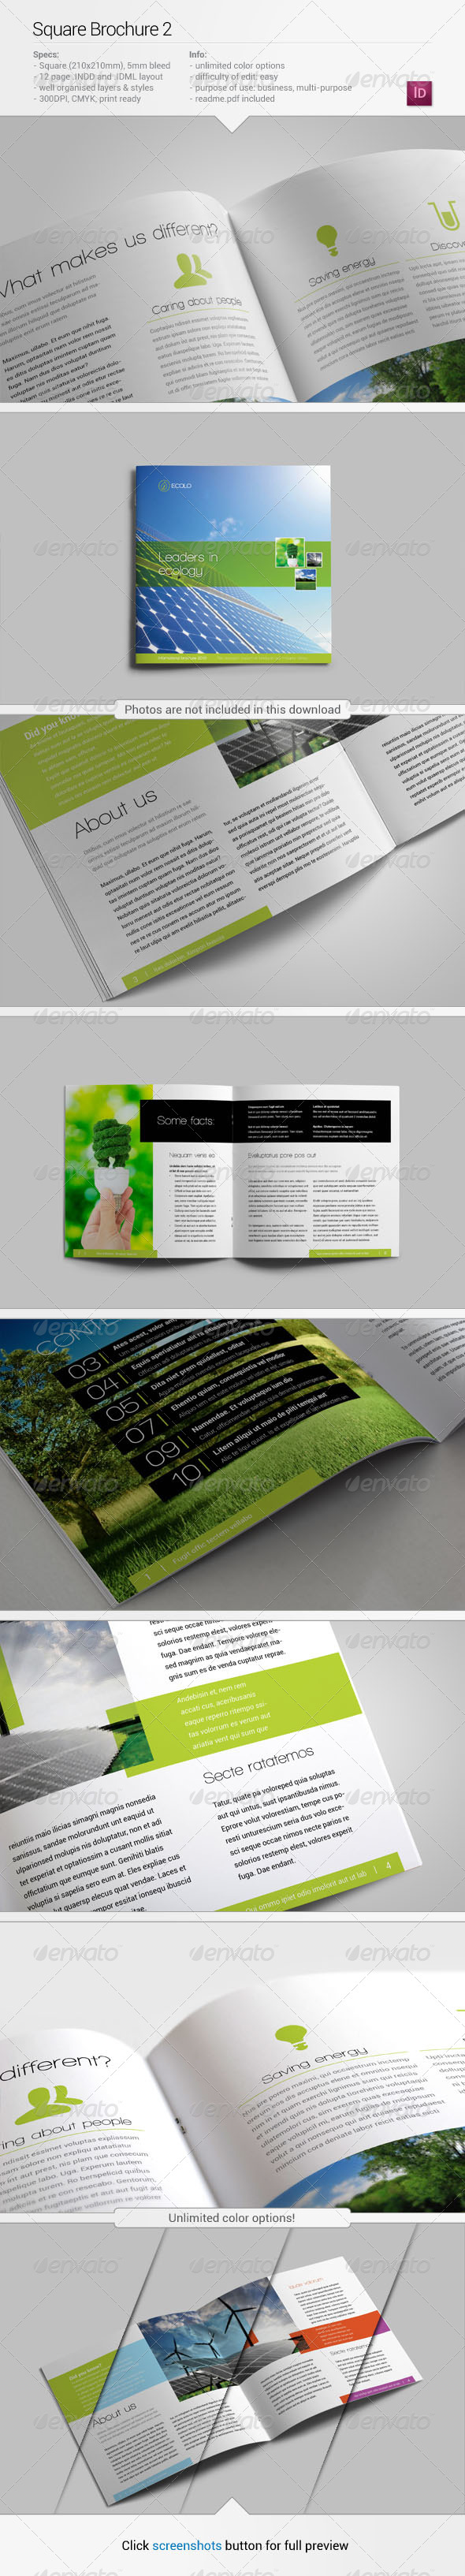 Square Brochure 2 - Corporate Brochures